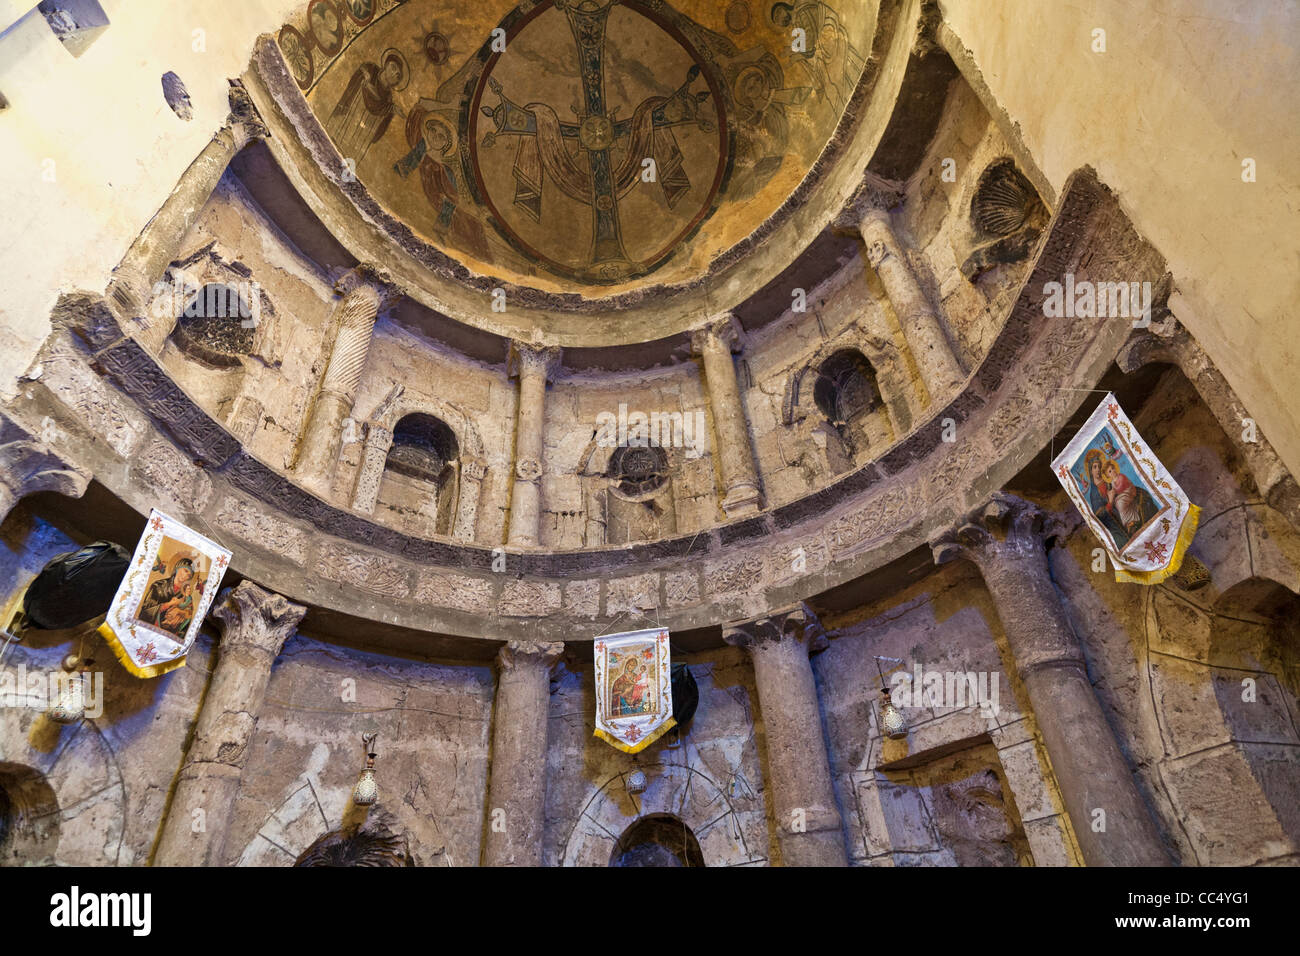 In the Apse of the Coptic White Monastery near the Upper Egyptian city of Sohag, Middle Egypt - Stock Image